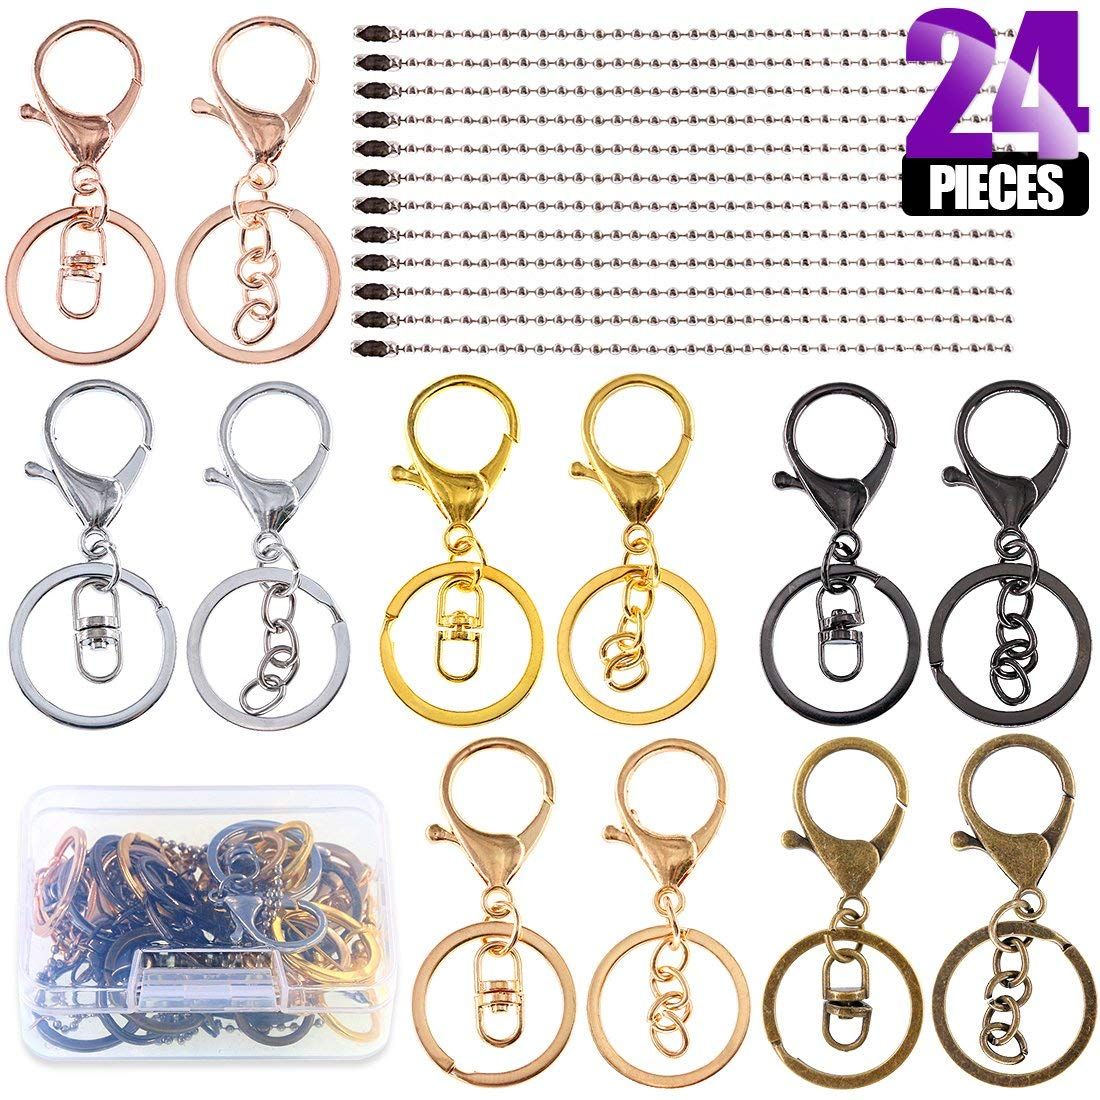 Swpeet 24Pcs Jewelry Making Kit, Including 12Pcs Assorted Colors Lobster Clasps Keychain with 12Pcs Ball Chain Necklace, Swivel Lanyards Snap Hooks Lobster Clasps for Jewelry Making